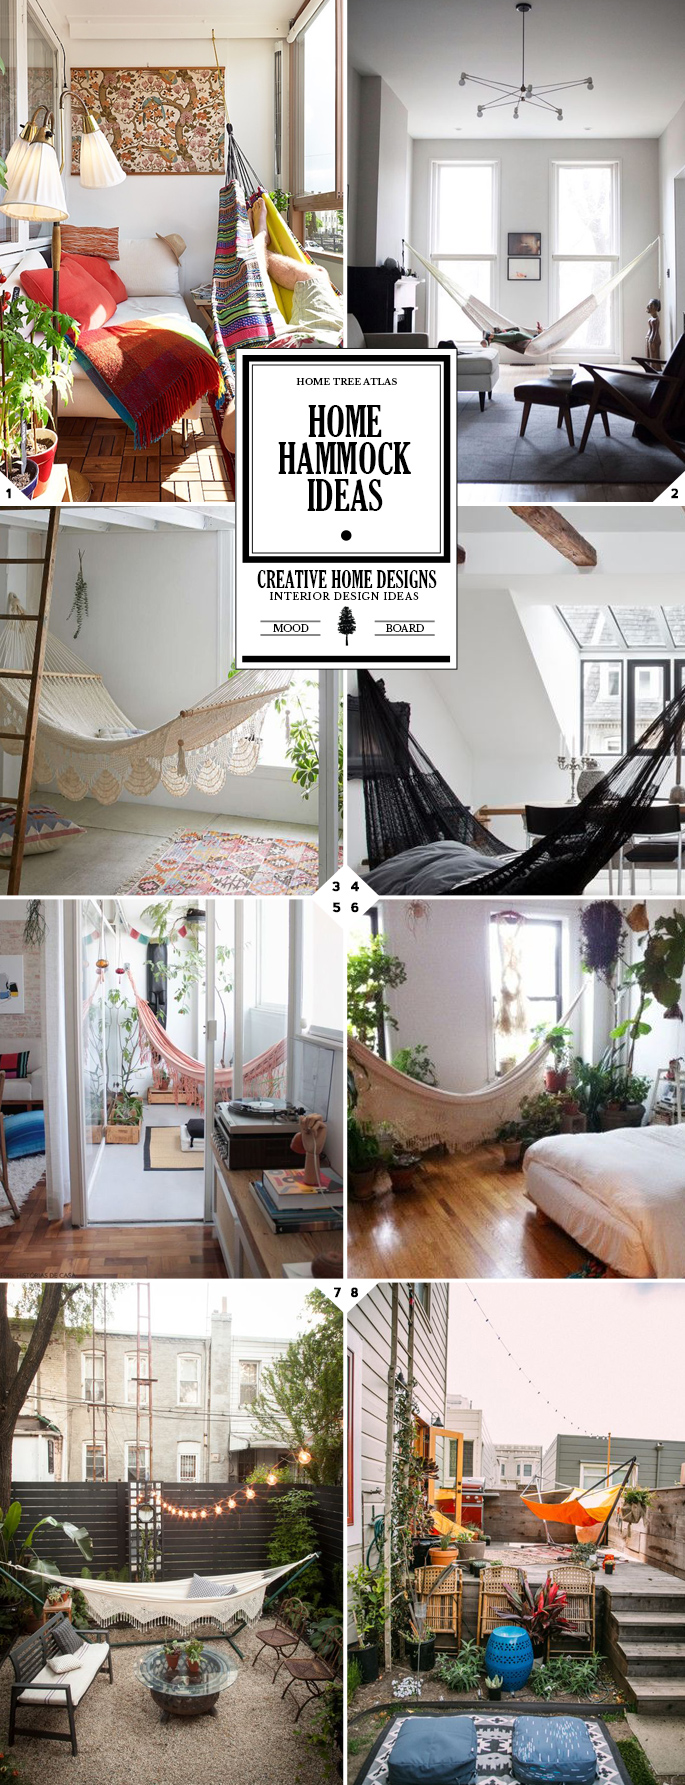 DIY Guide: Indoor Hammock Ideas